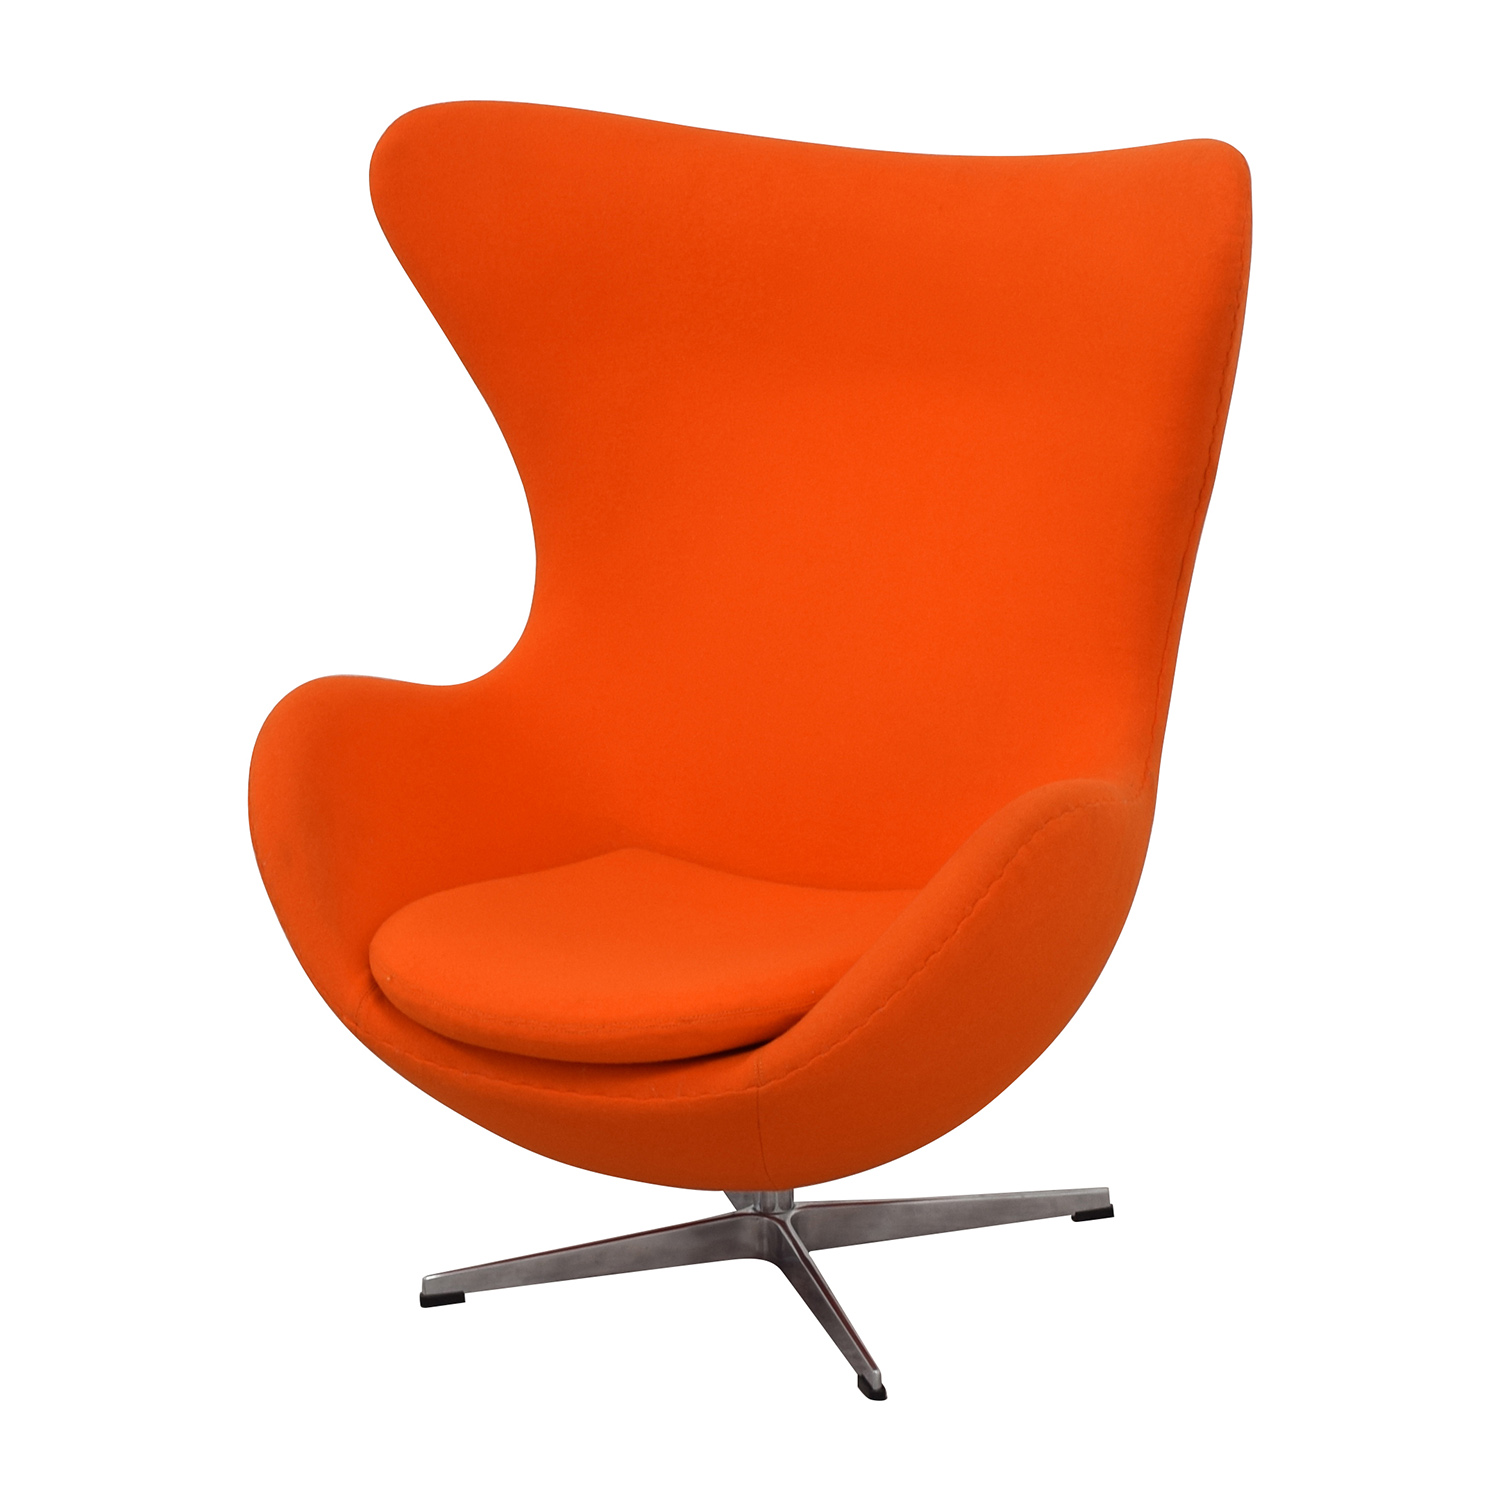 66 off inmod inmod jacobsen orange egg chair chairs for In mod furniture